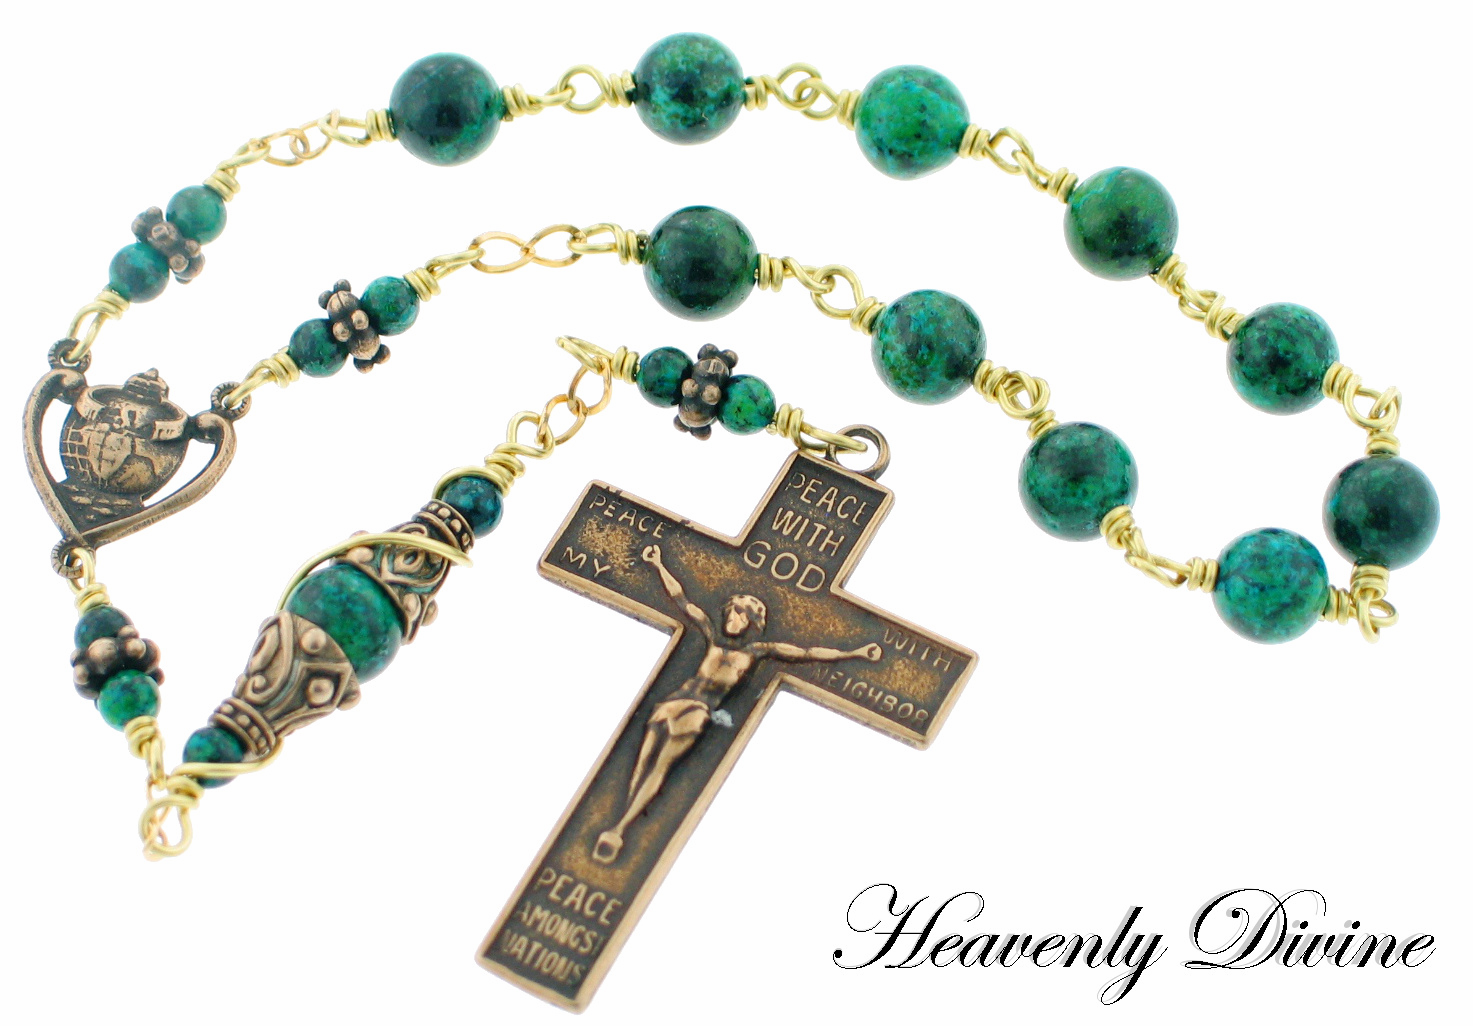 How to Prayer the Chaplet of Conversion